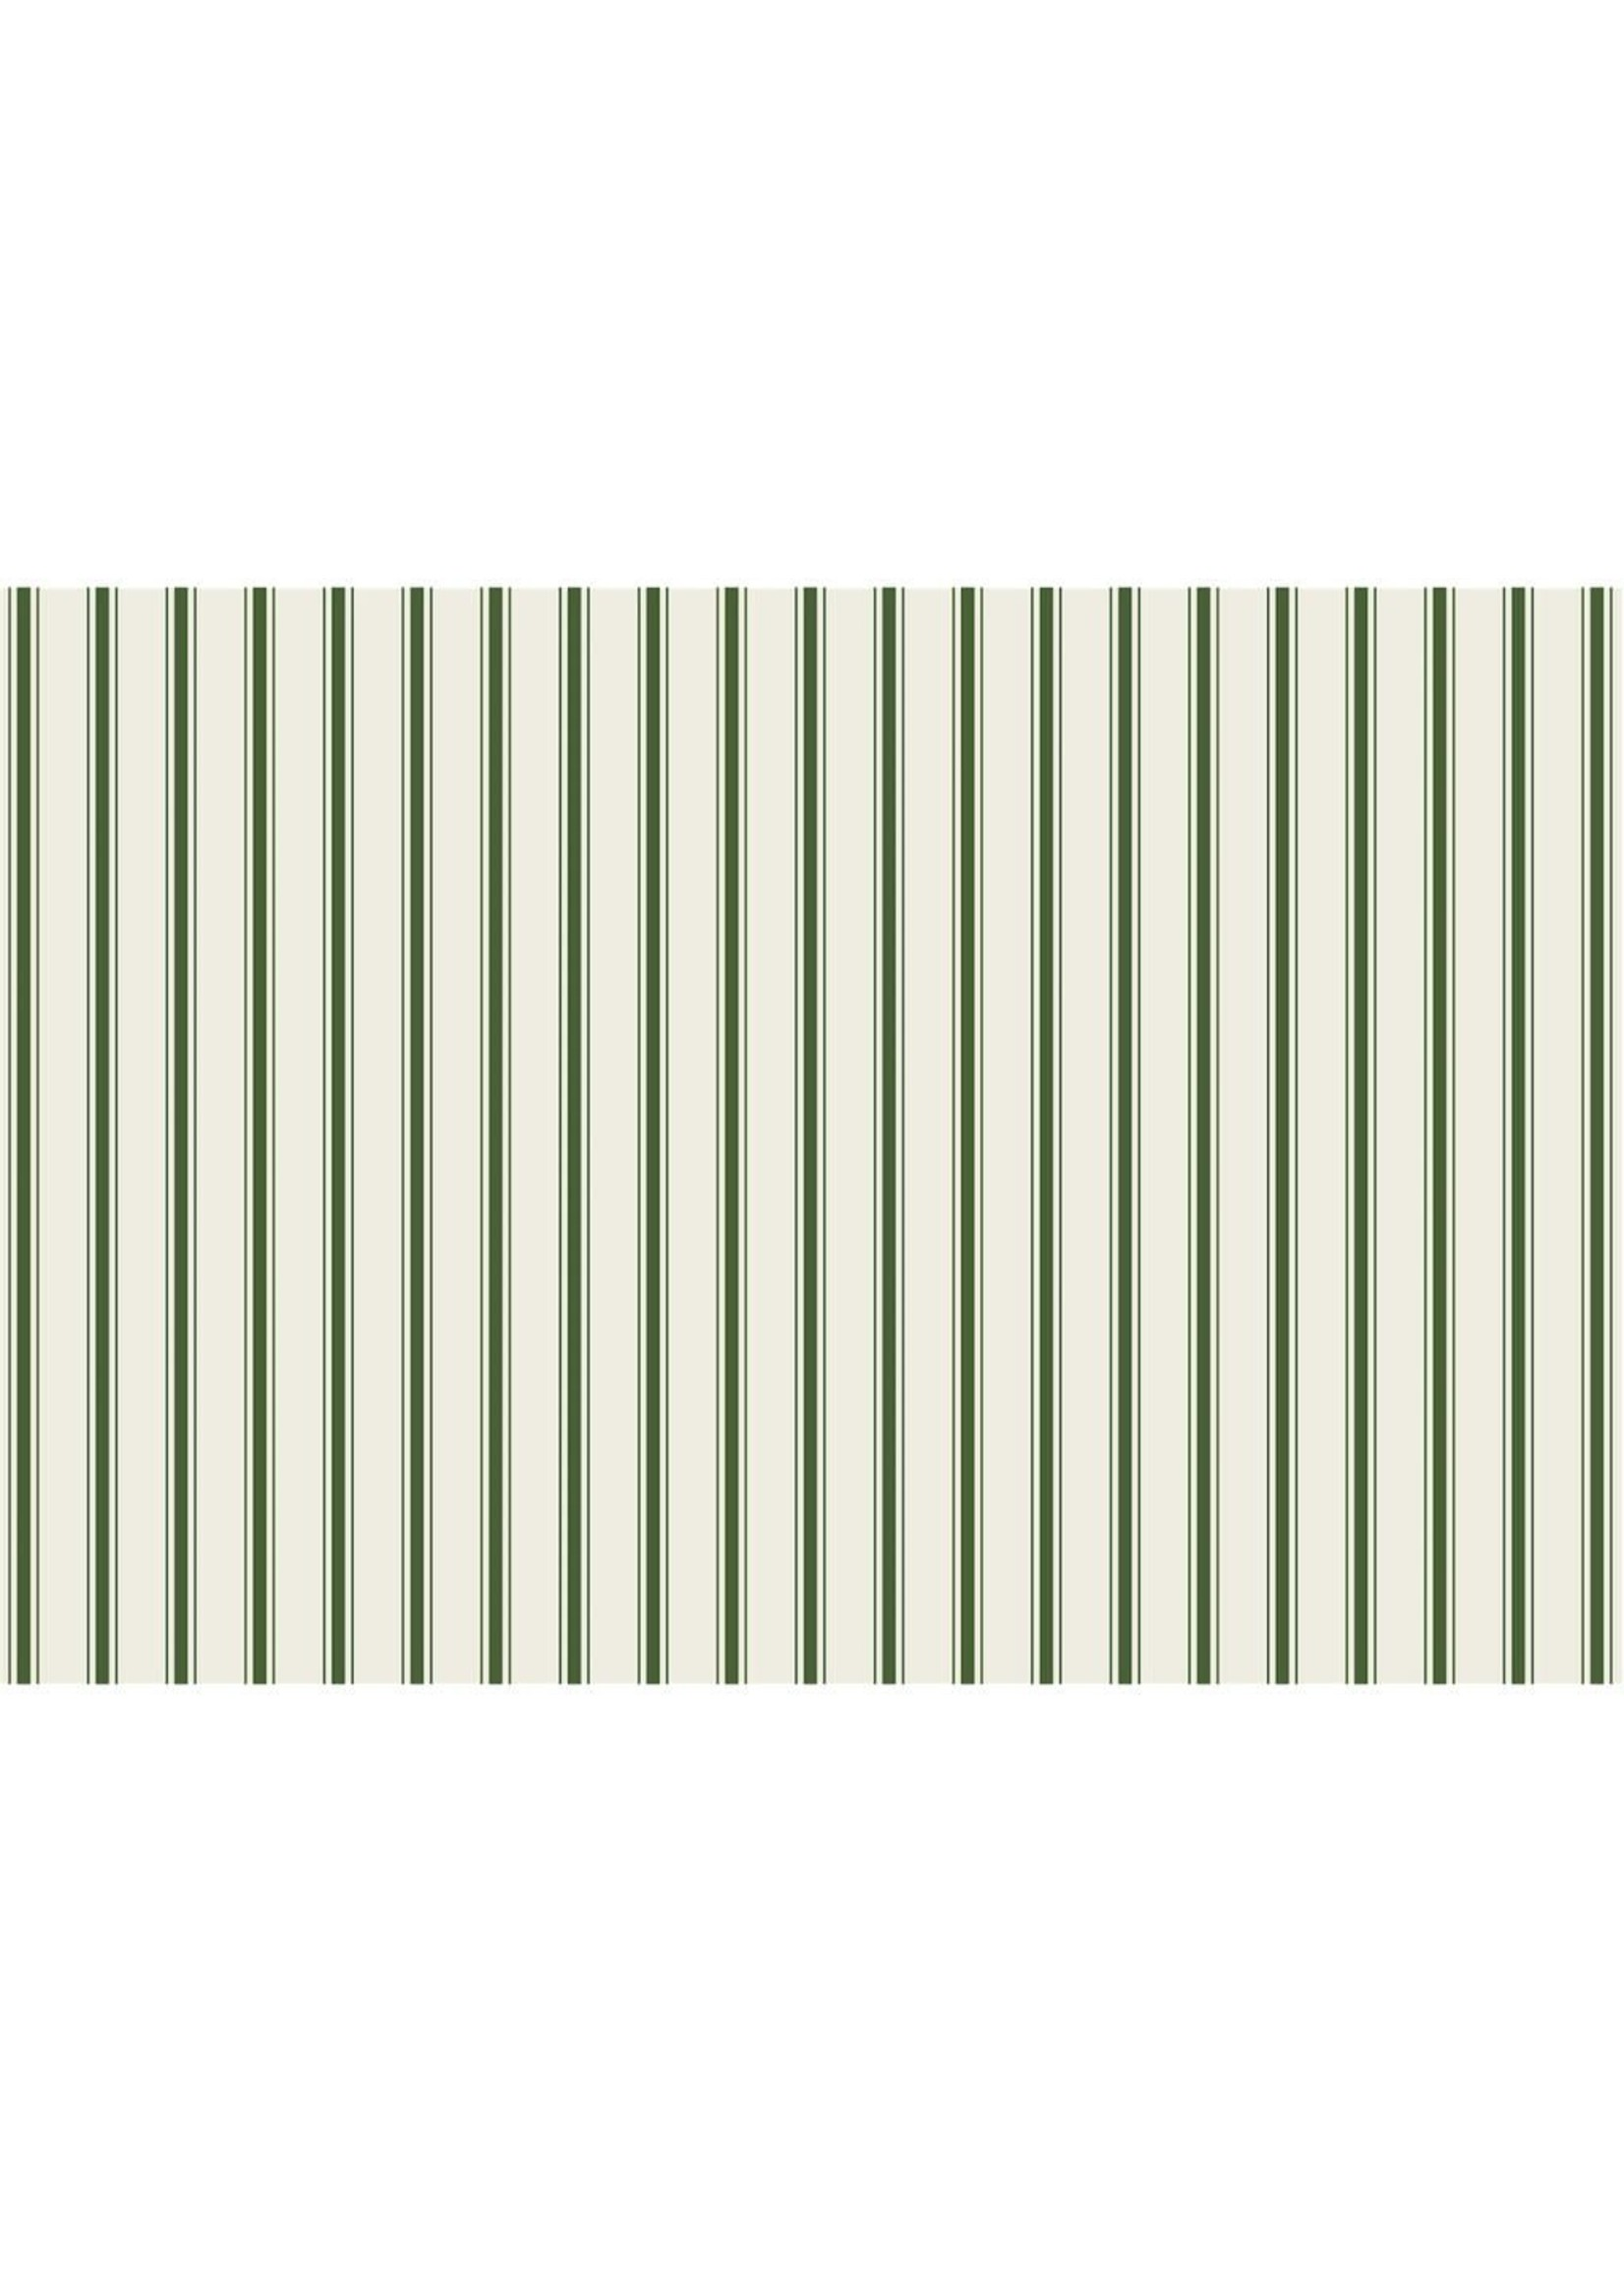 Hester & Cook Paper Placemats - Ribbon Stripe Green